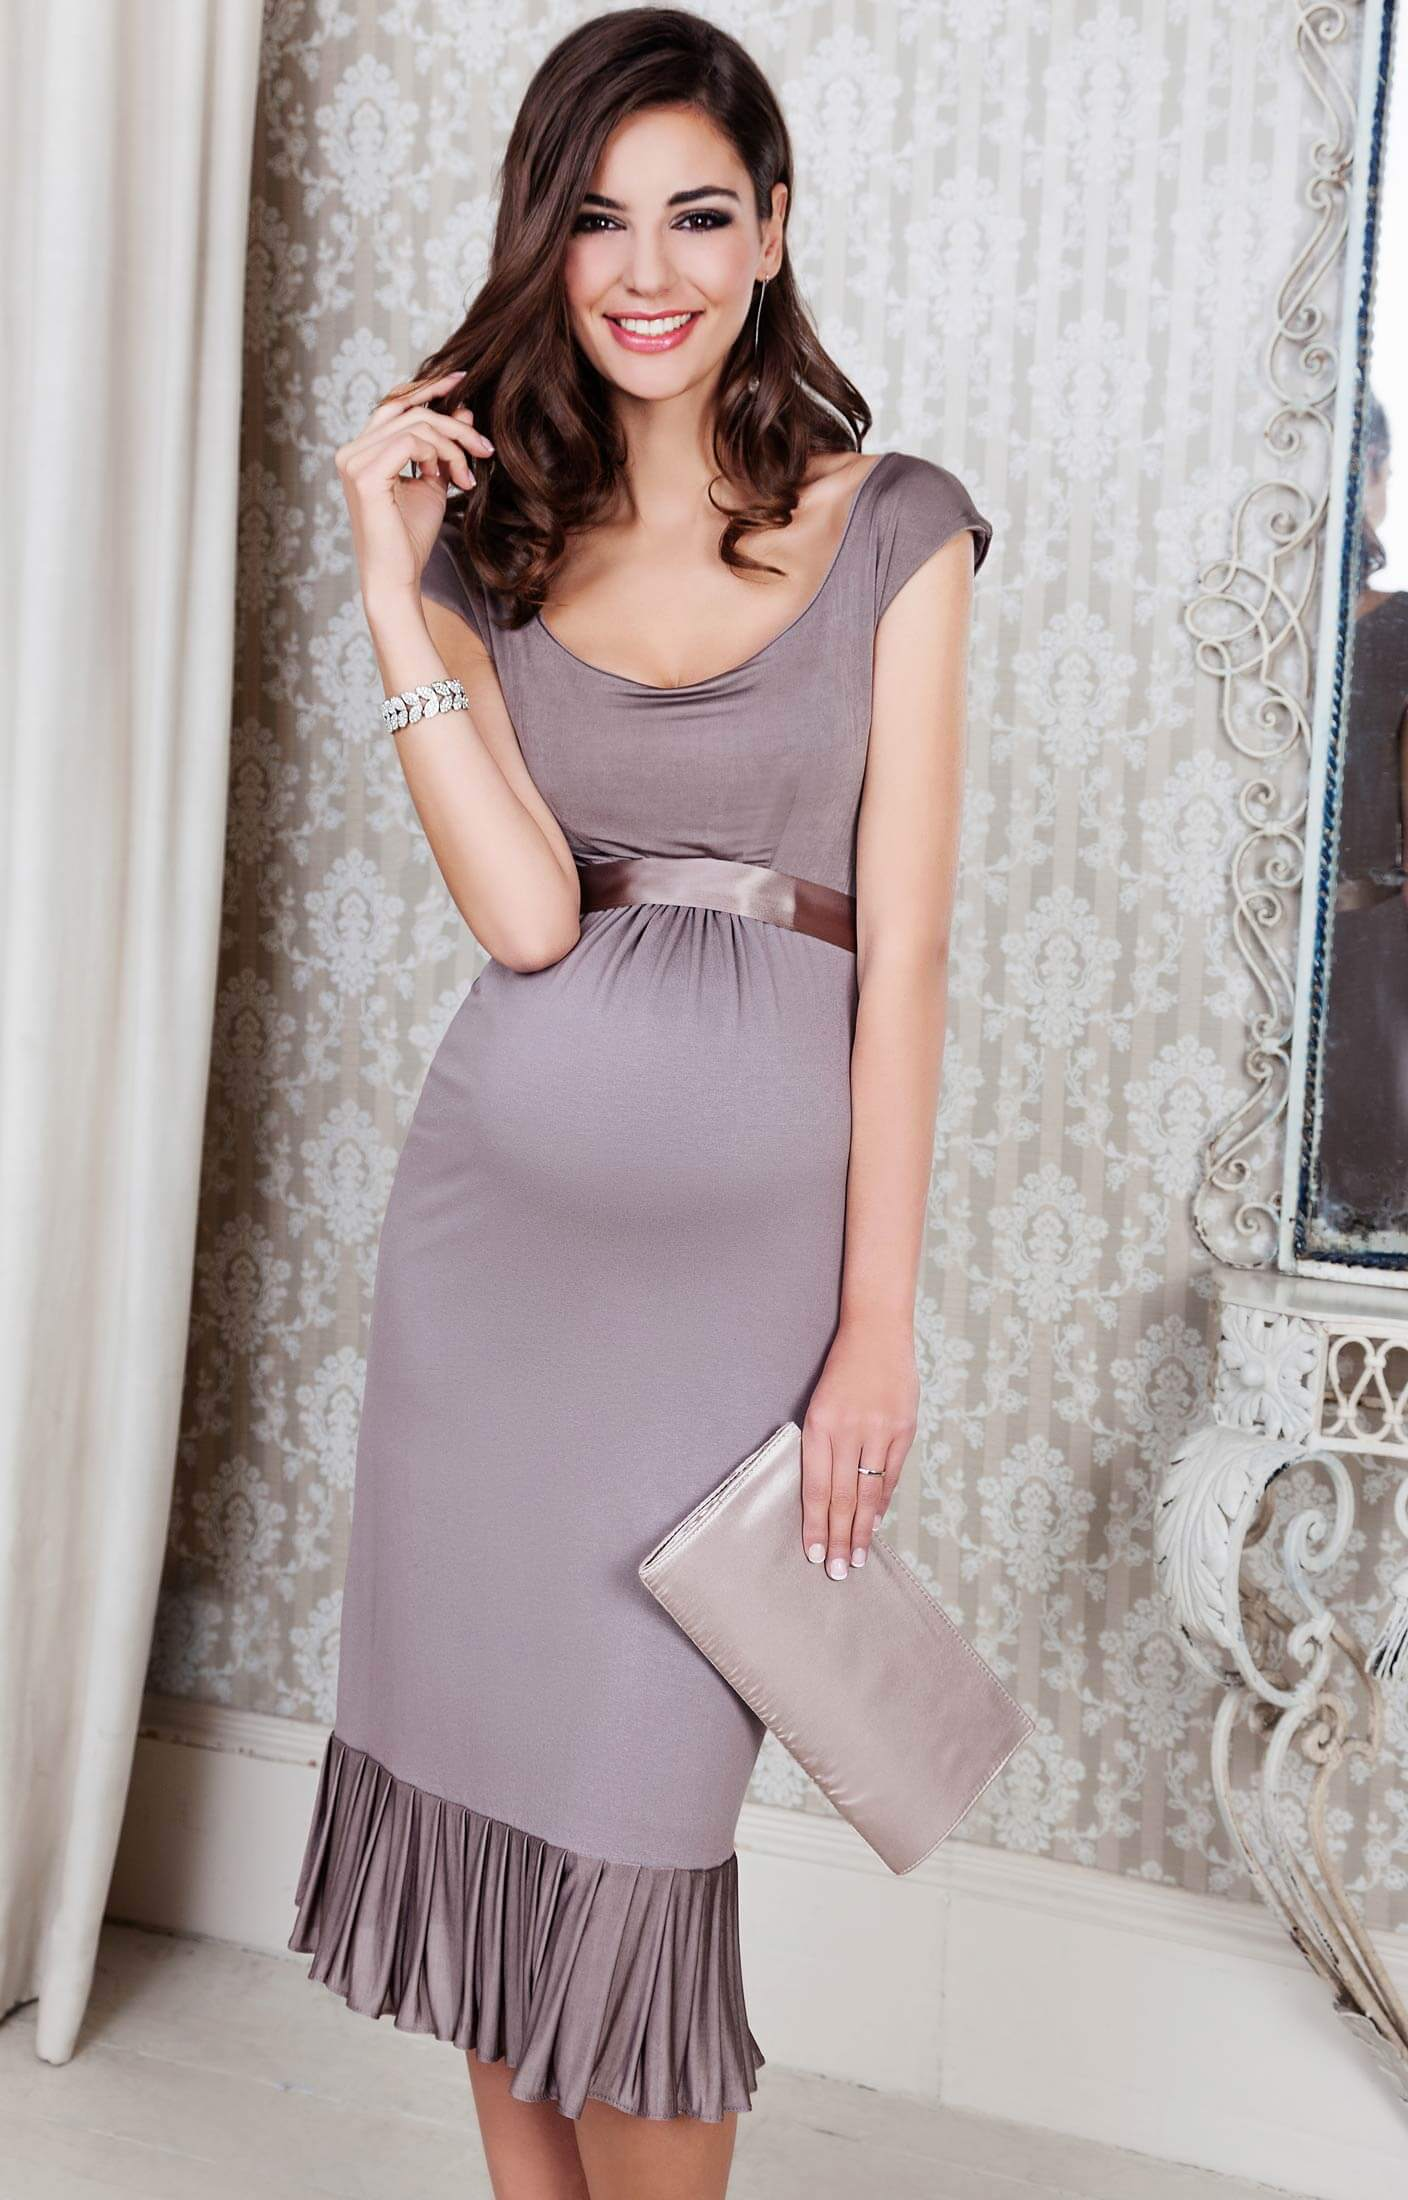 Lauren maternity dress mink rose by tiffany rose